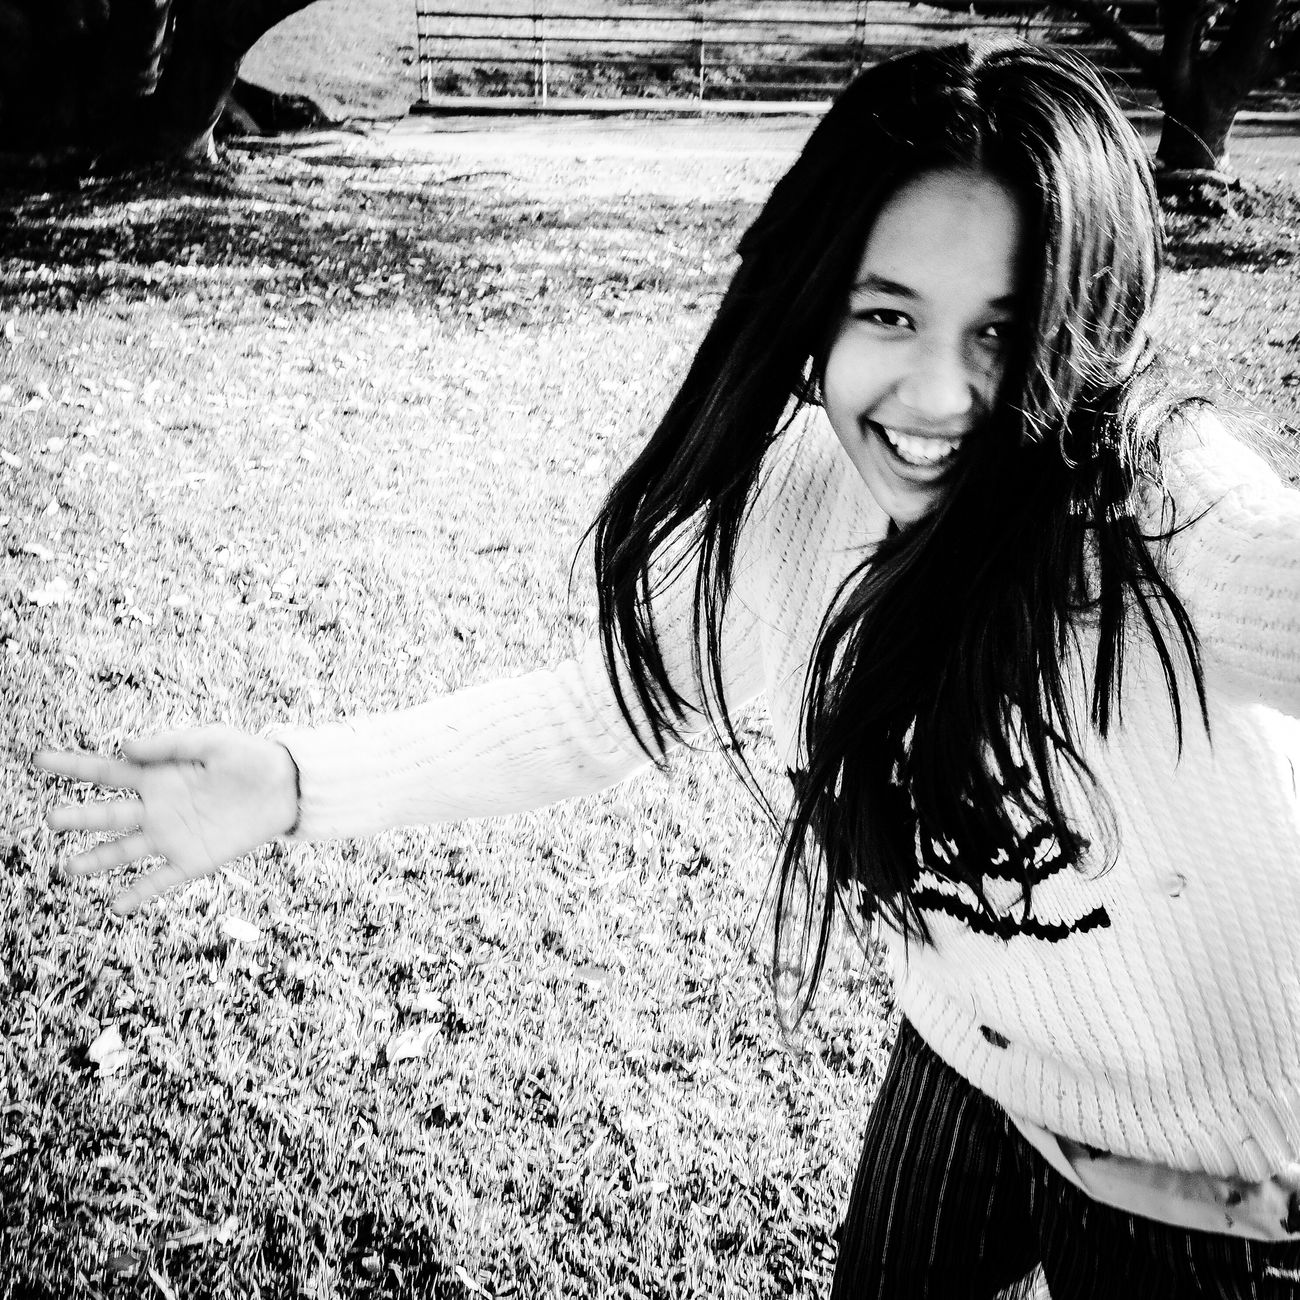 Long Hair Casual Clothing Outdoors Looking At Camera Ricoh Gr Blackandwhite RicohGRII Ricoh Monochrome EyeEm Best Shots Argentina Eye4photography  Family Daughter Cheese! Portrait